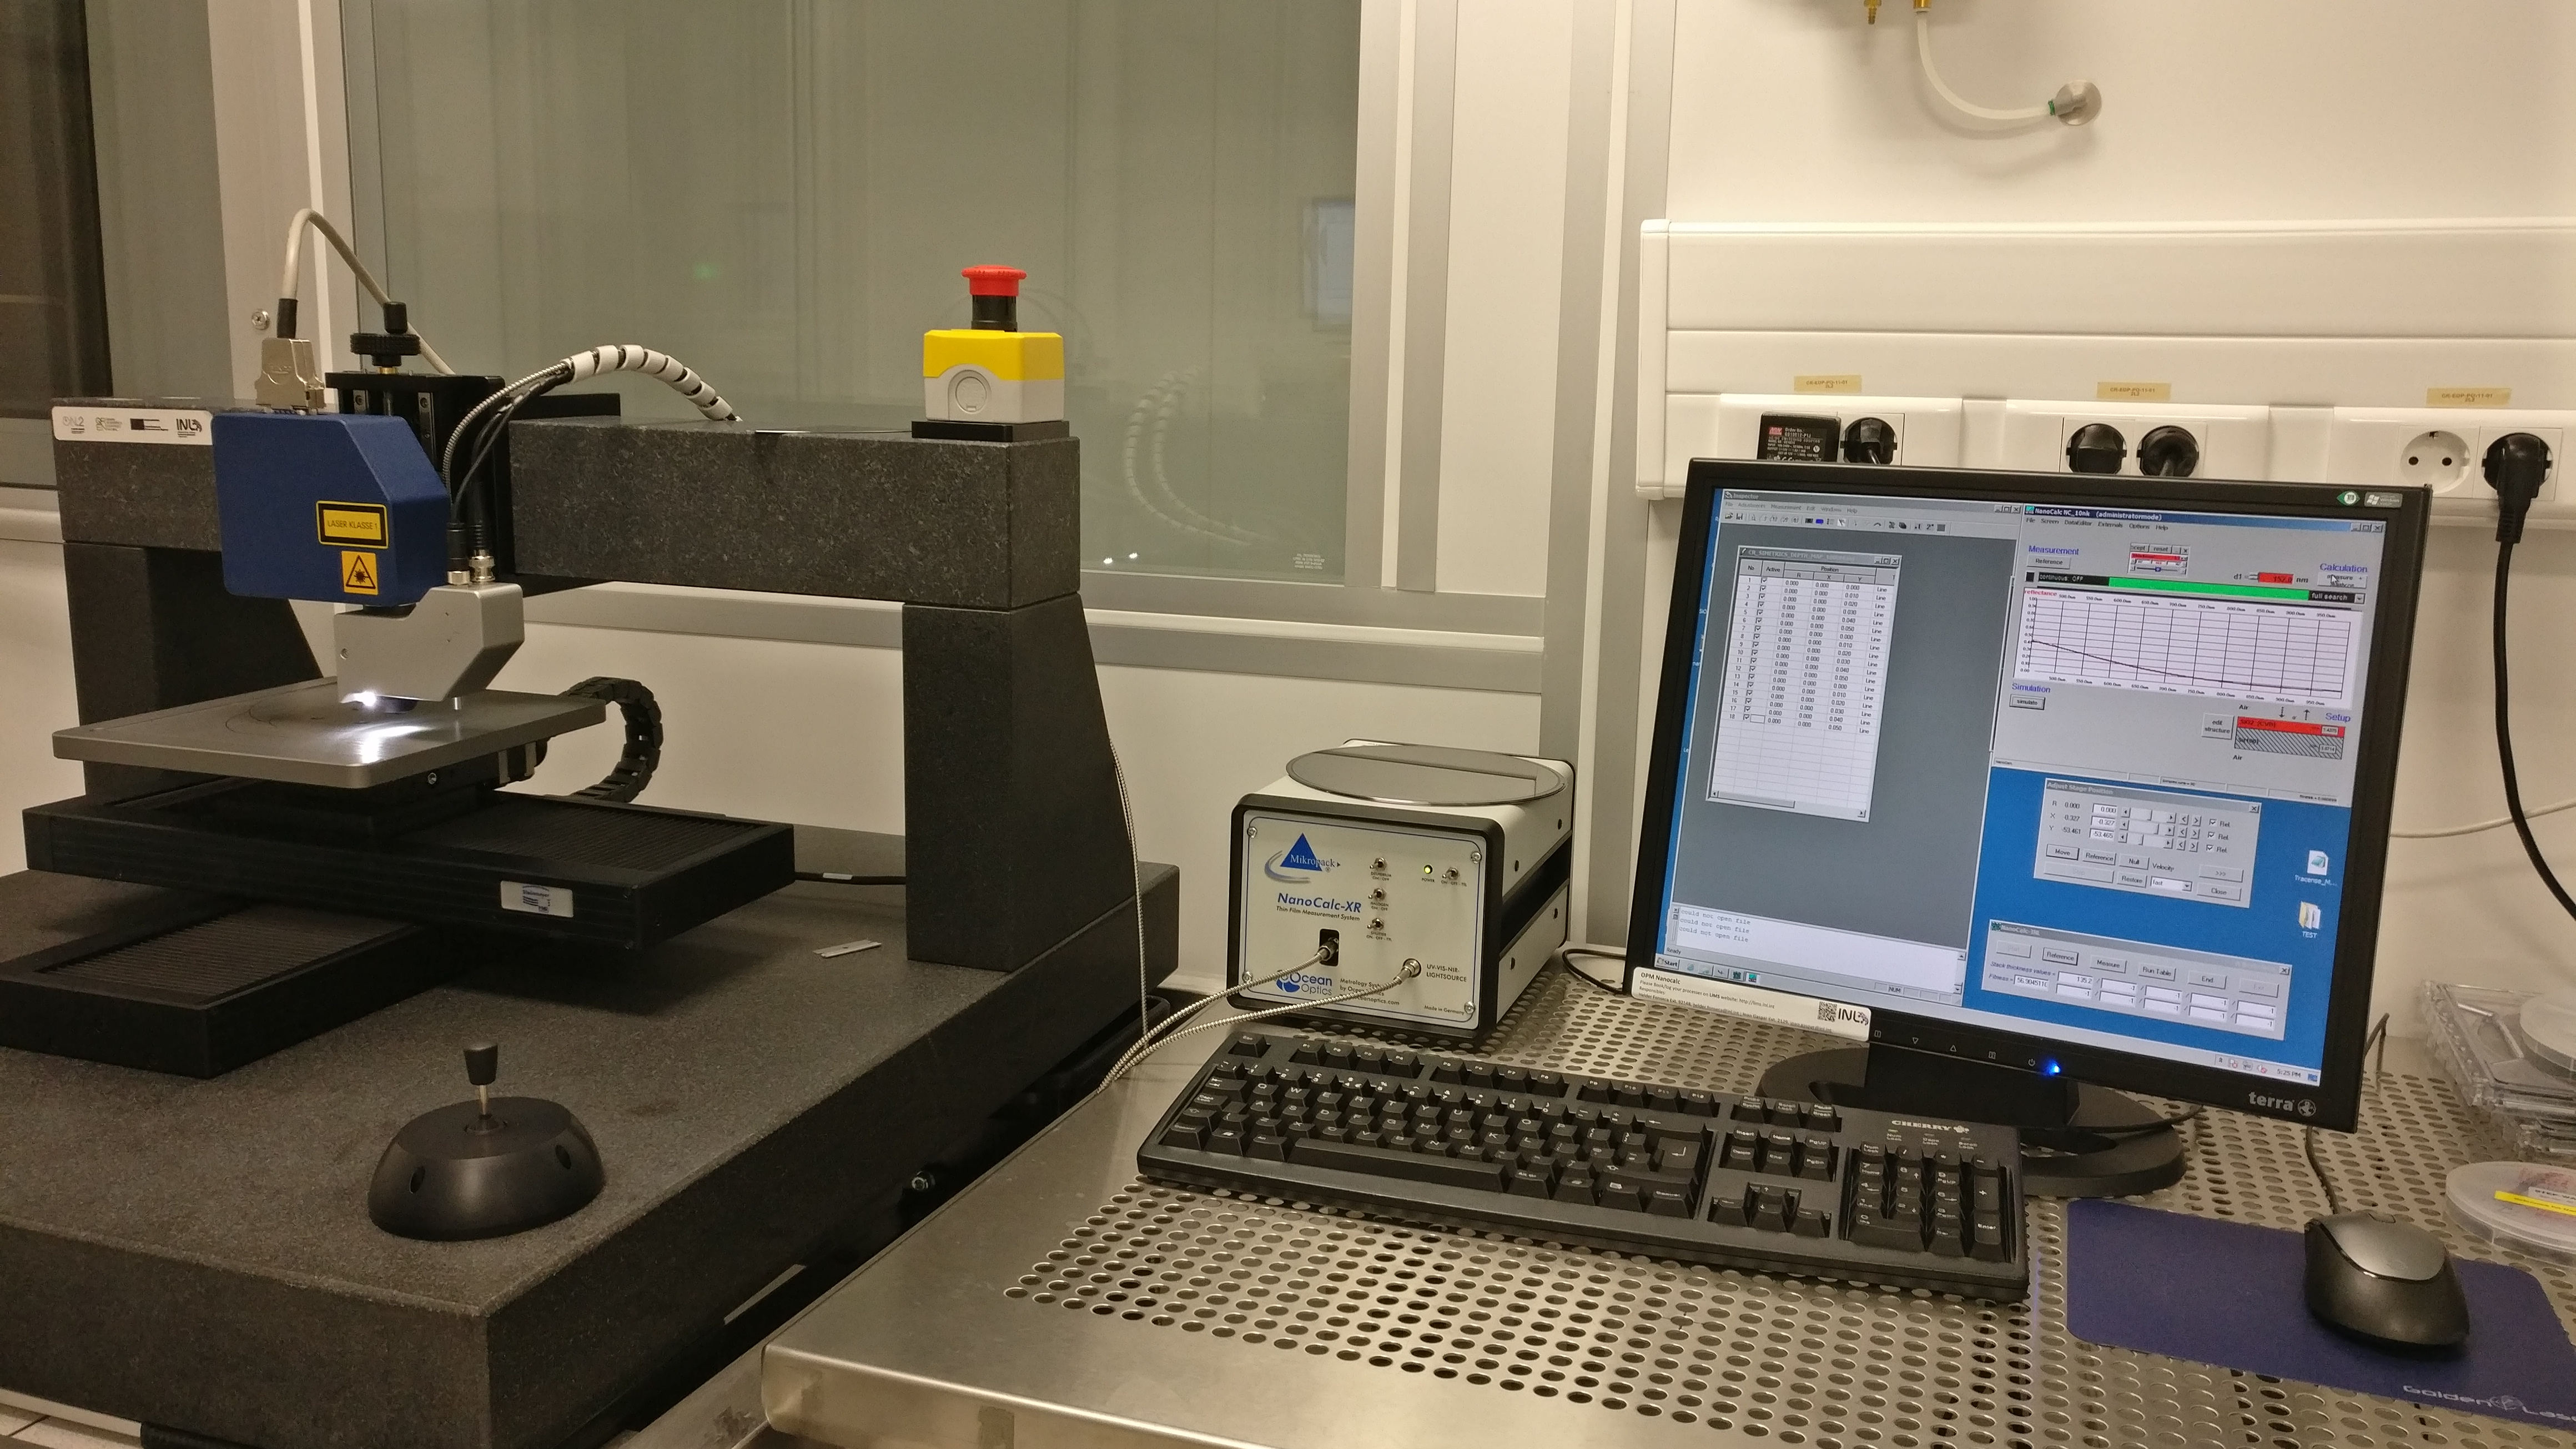 Picture of OPM Nanocalc  - Optical Profilometer / Interferometer